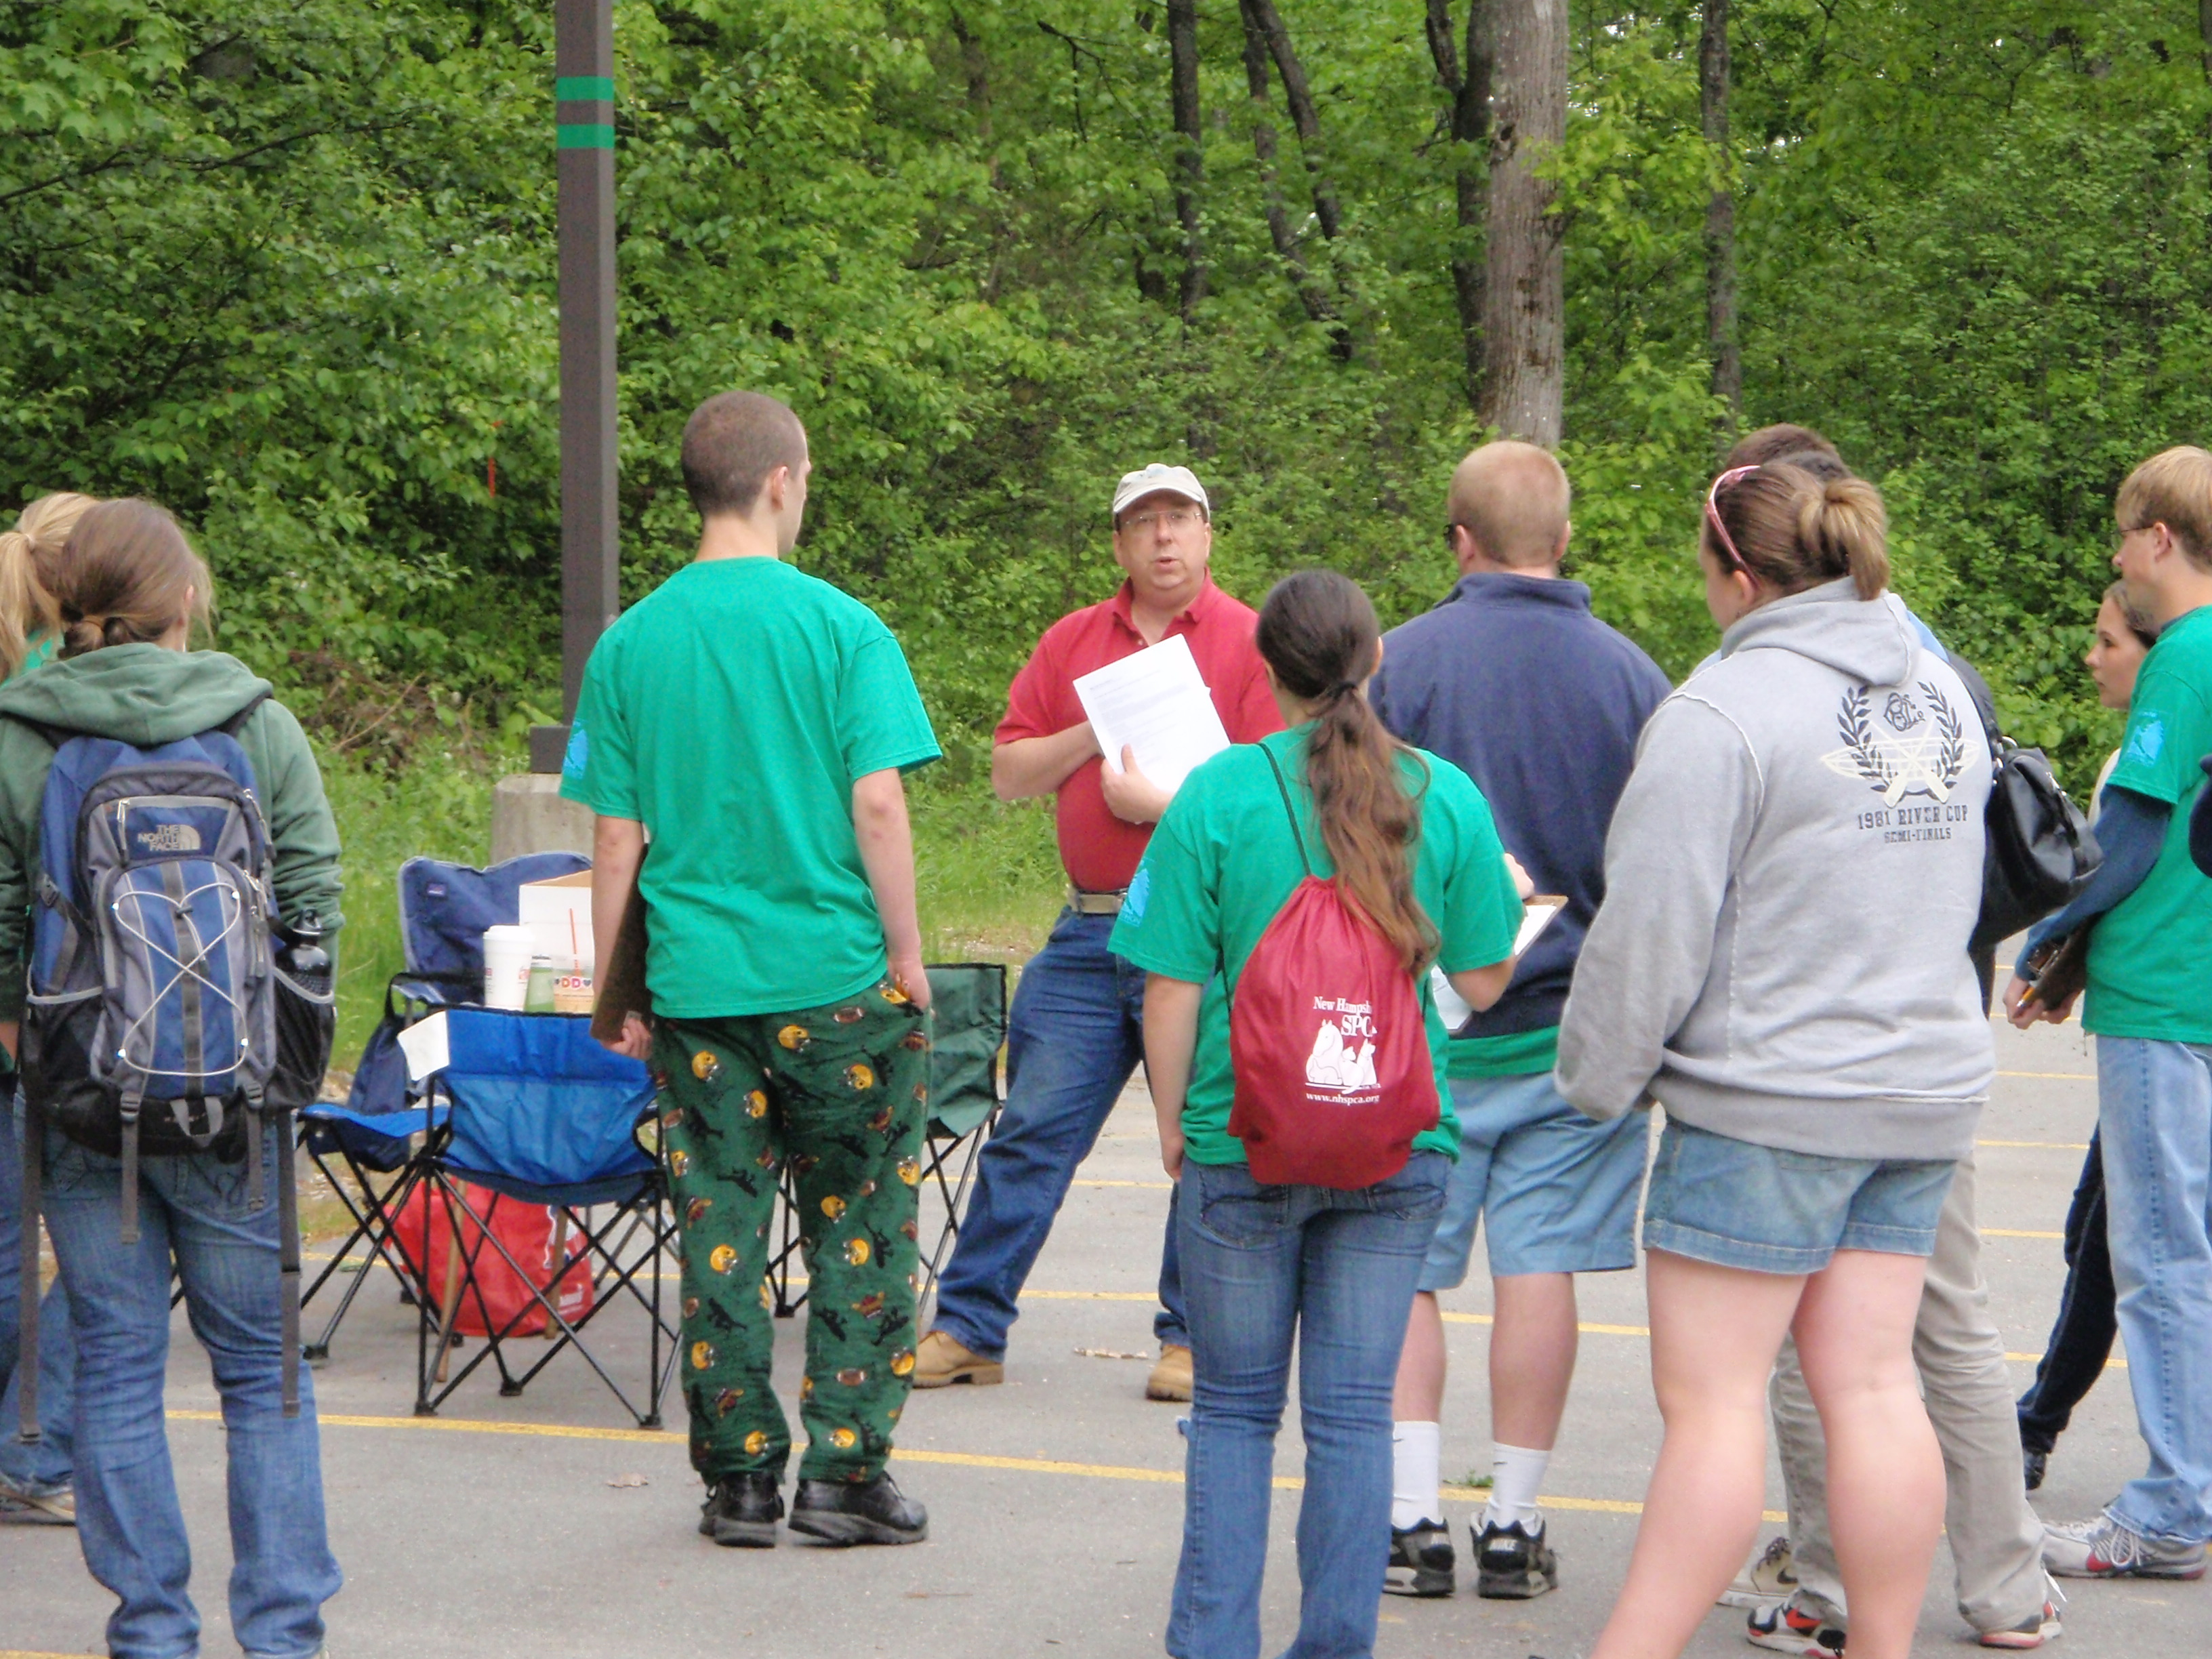 Handing out the Envirothon exam